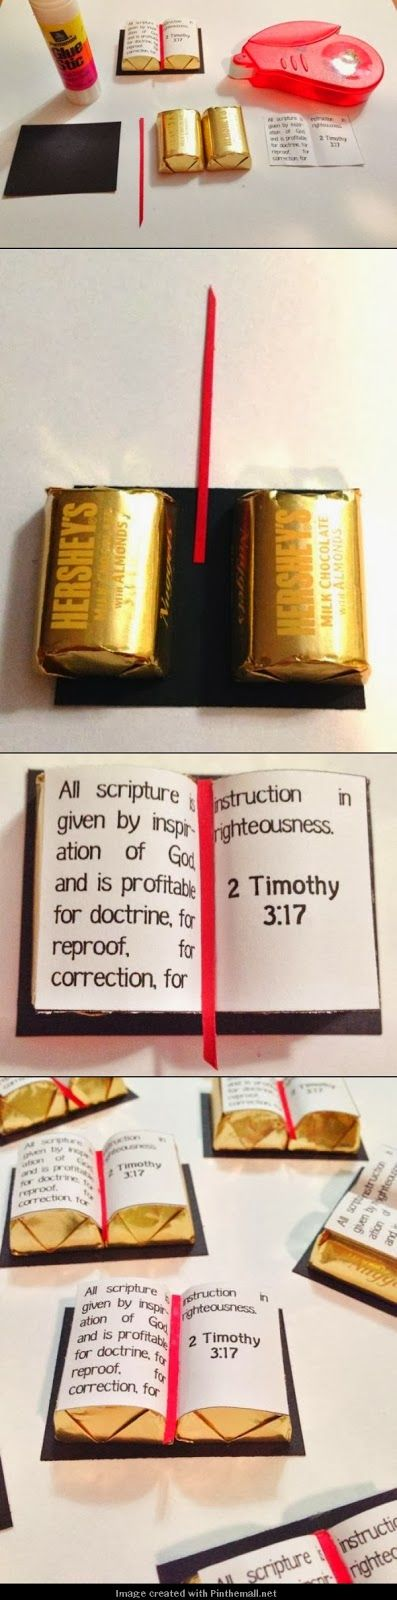 Scripture treat handout: Great instructions and printable to make these using Hershey's Chocolate Almond Nuggets.